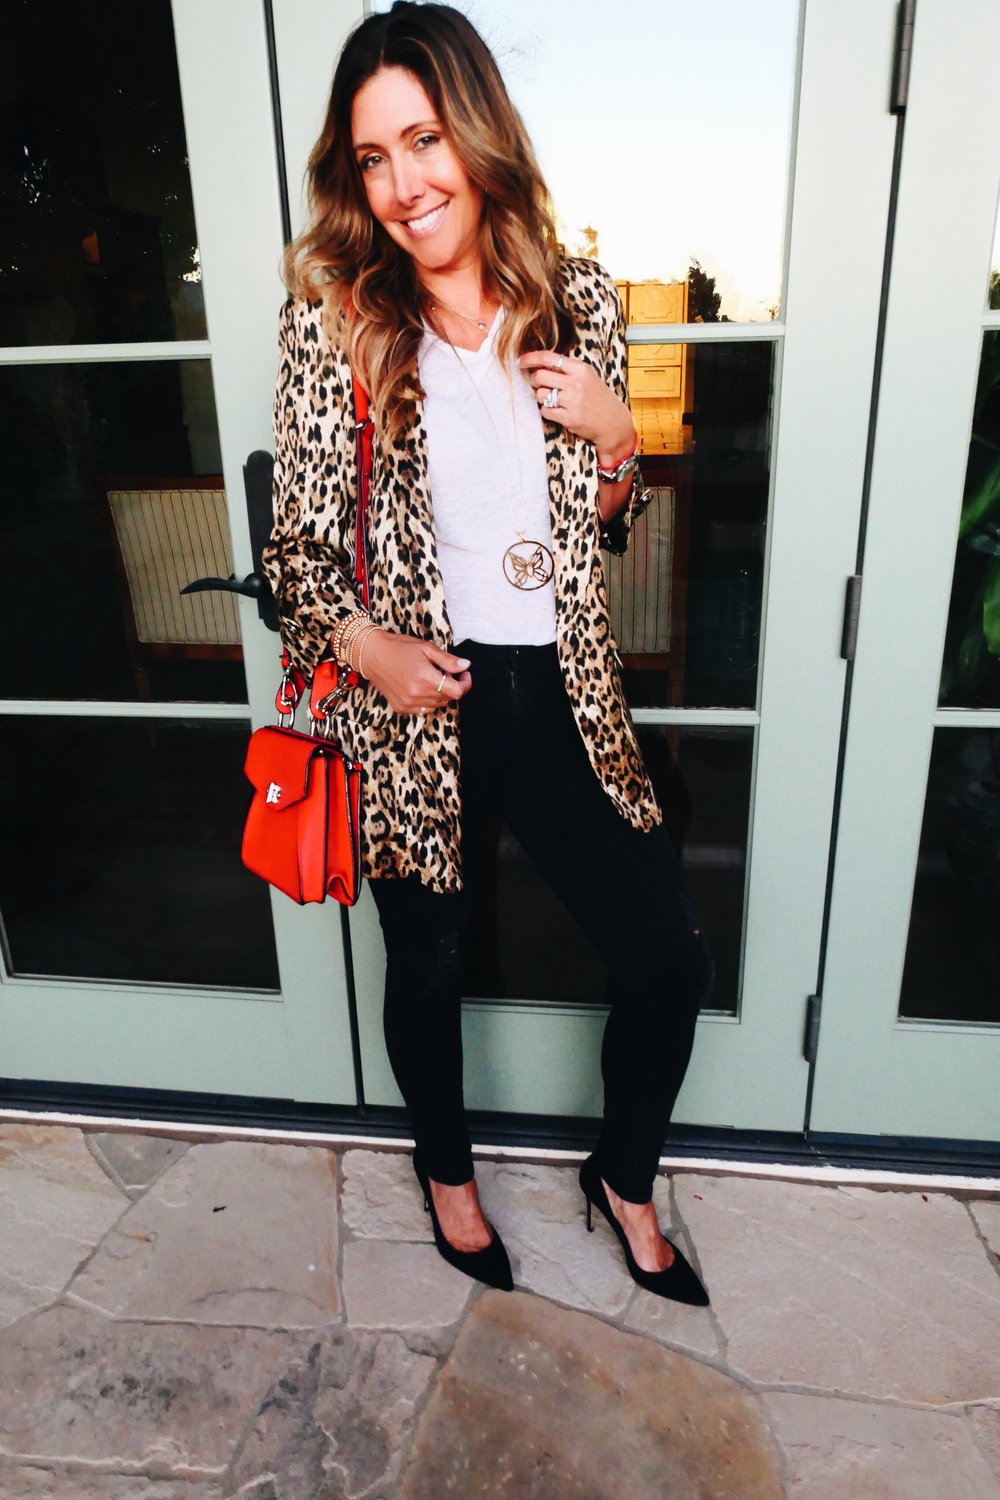 White Tee:  Isabel Marant  | Leopard Blazer: Zara, similar  here  | Jeans:  Adriano Goldschmied  | Pumps:  Gianvito Rossi  | Red Bag: Proenza, similar  here